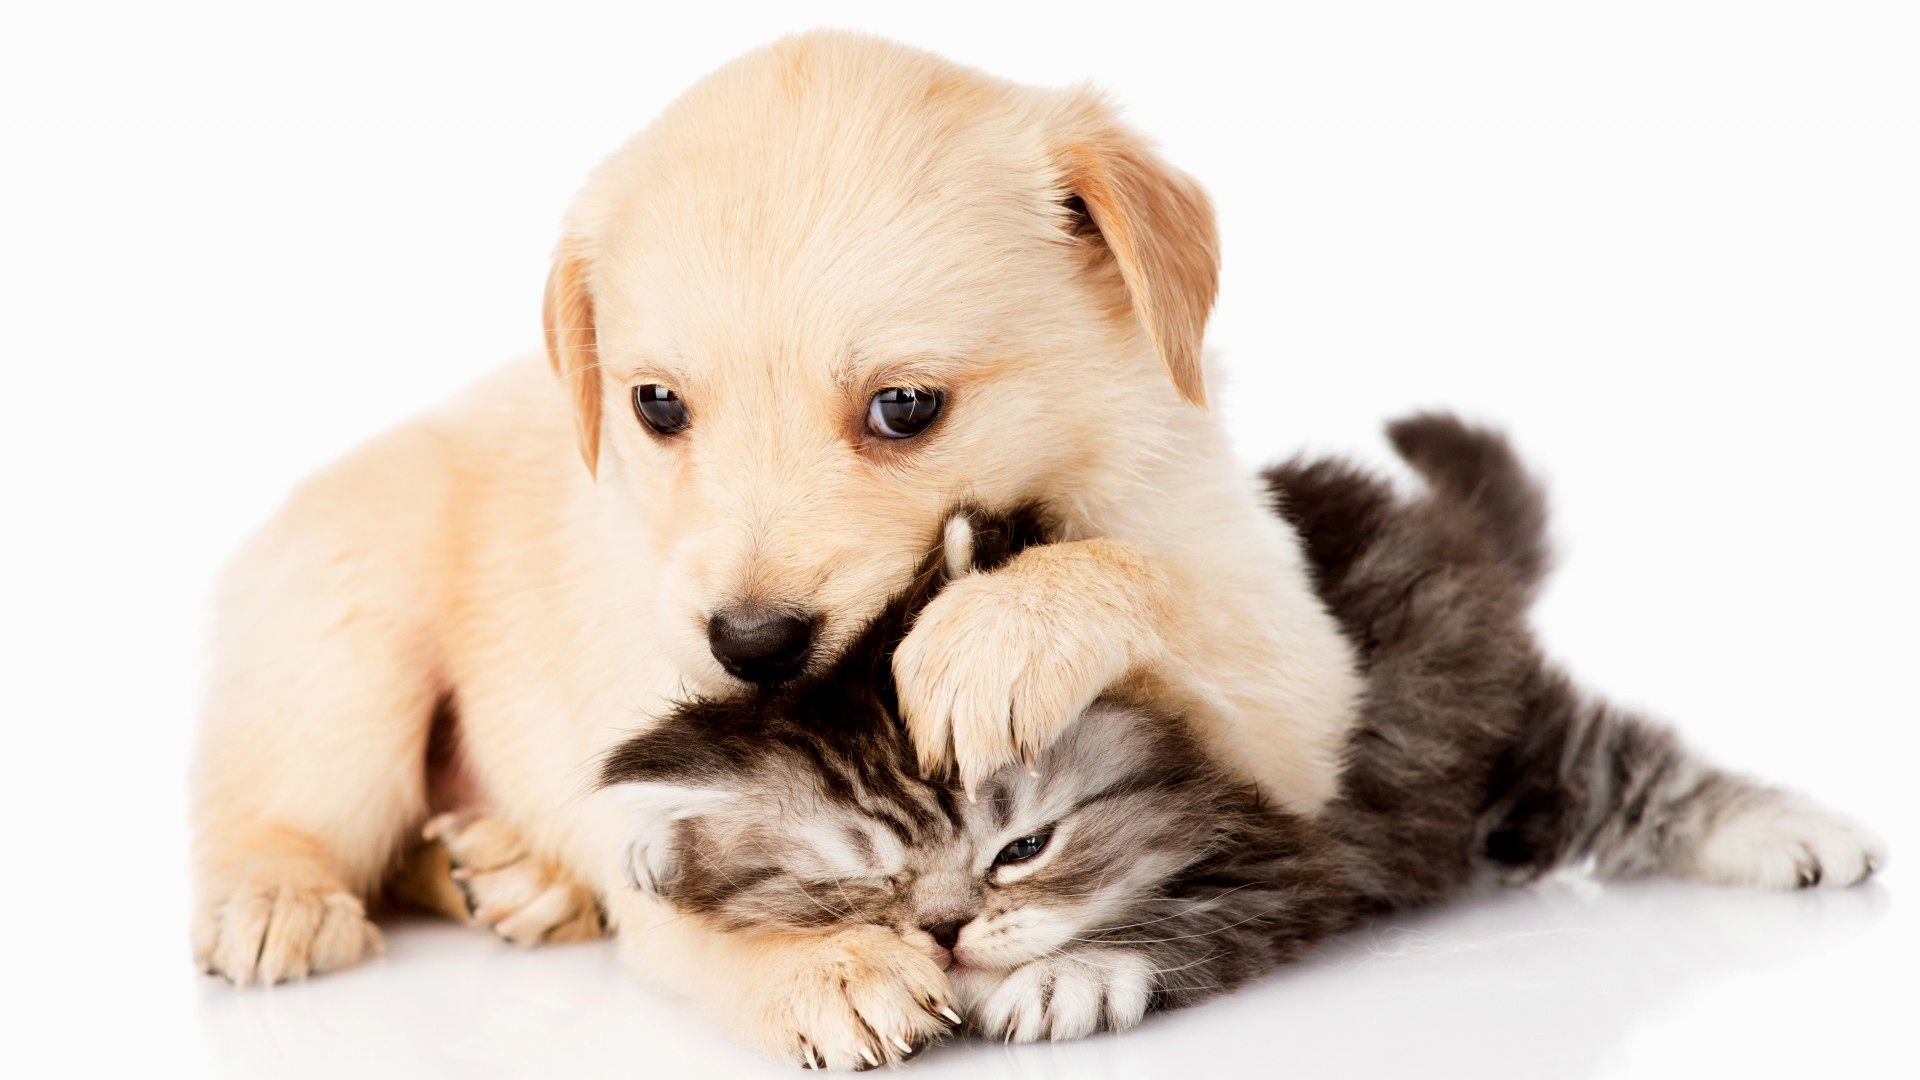 Puppies and kittens wallpapers 62 background pictures 1920x1080 cute puppy and kitten wallpaper thecheapjerseys Choice Image